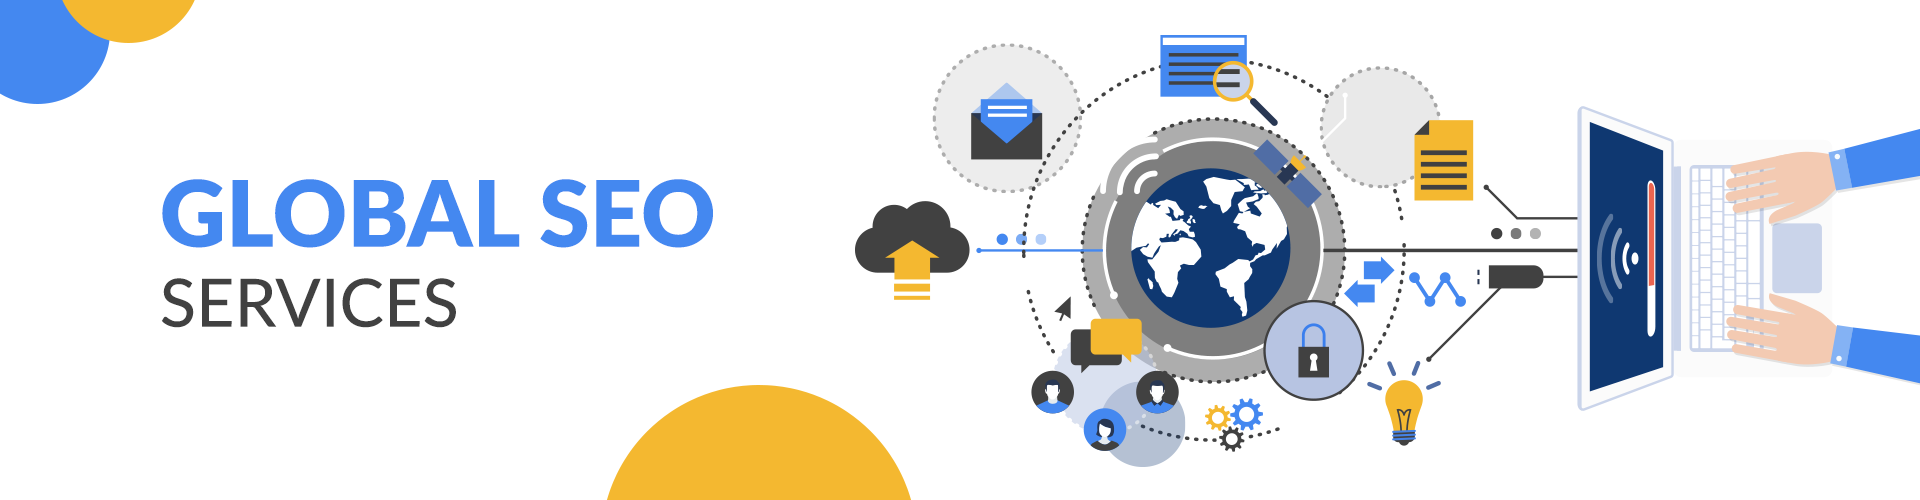 Global SEO Services